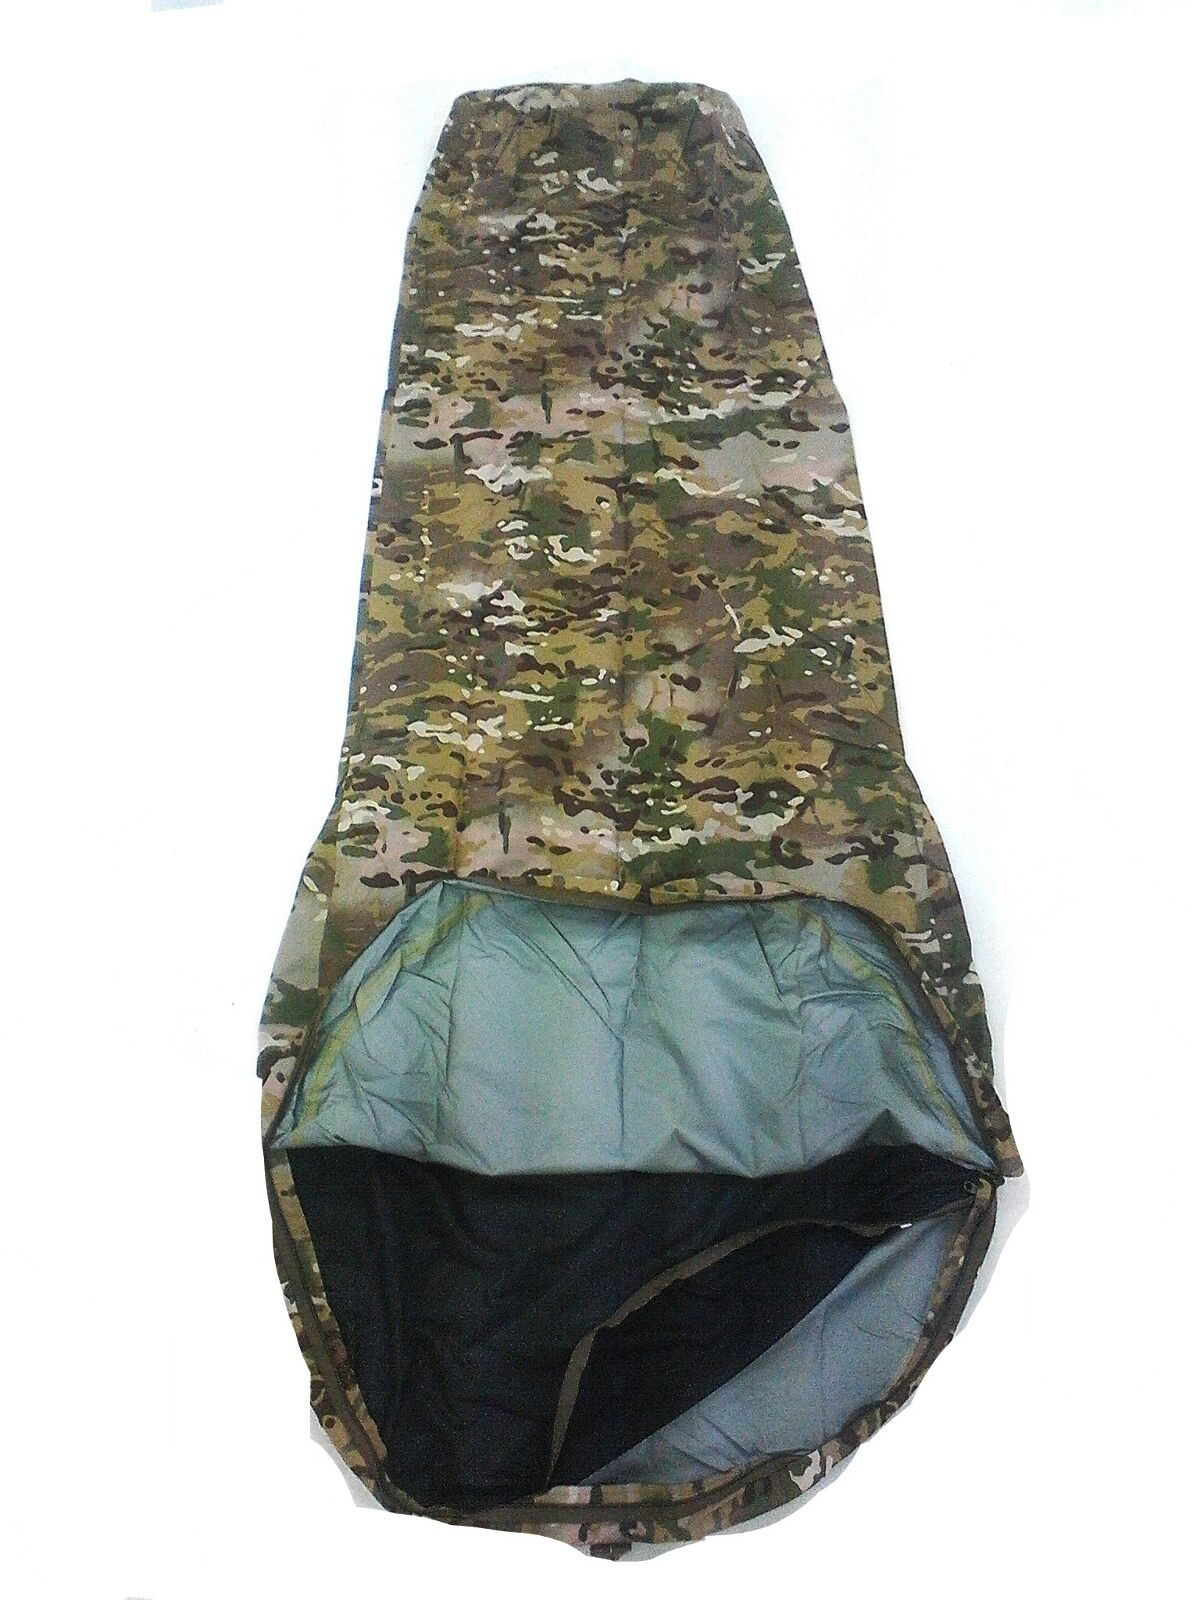 BIVVY Zak MULTICAM MILITAIRE ALLIAIRE POLEN 3 LAYER LATER, XLAGE ZIP MOZZIE NET